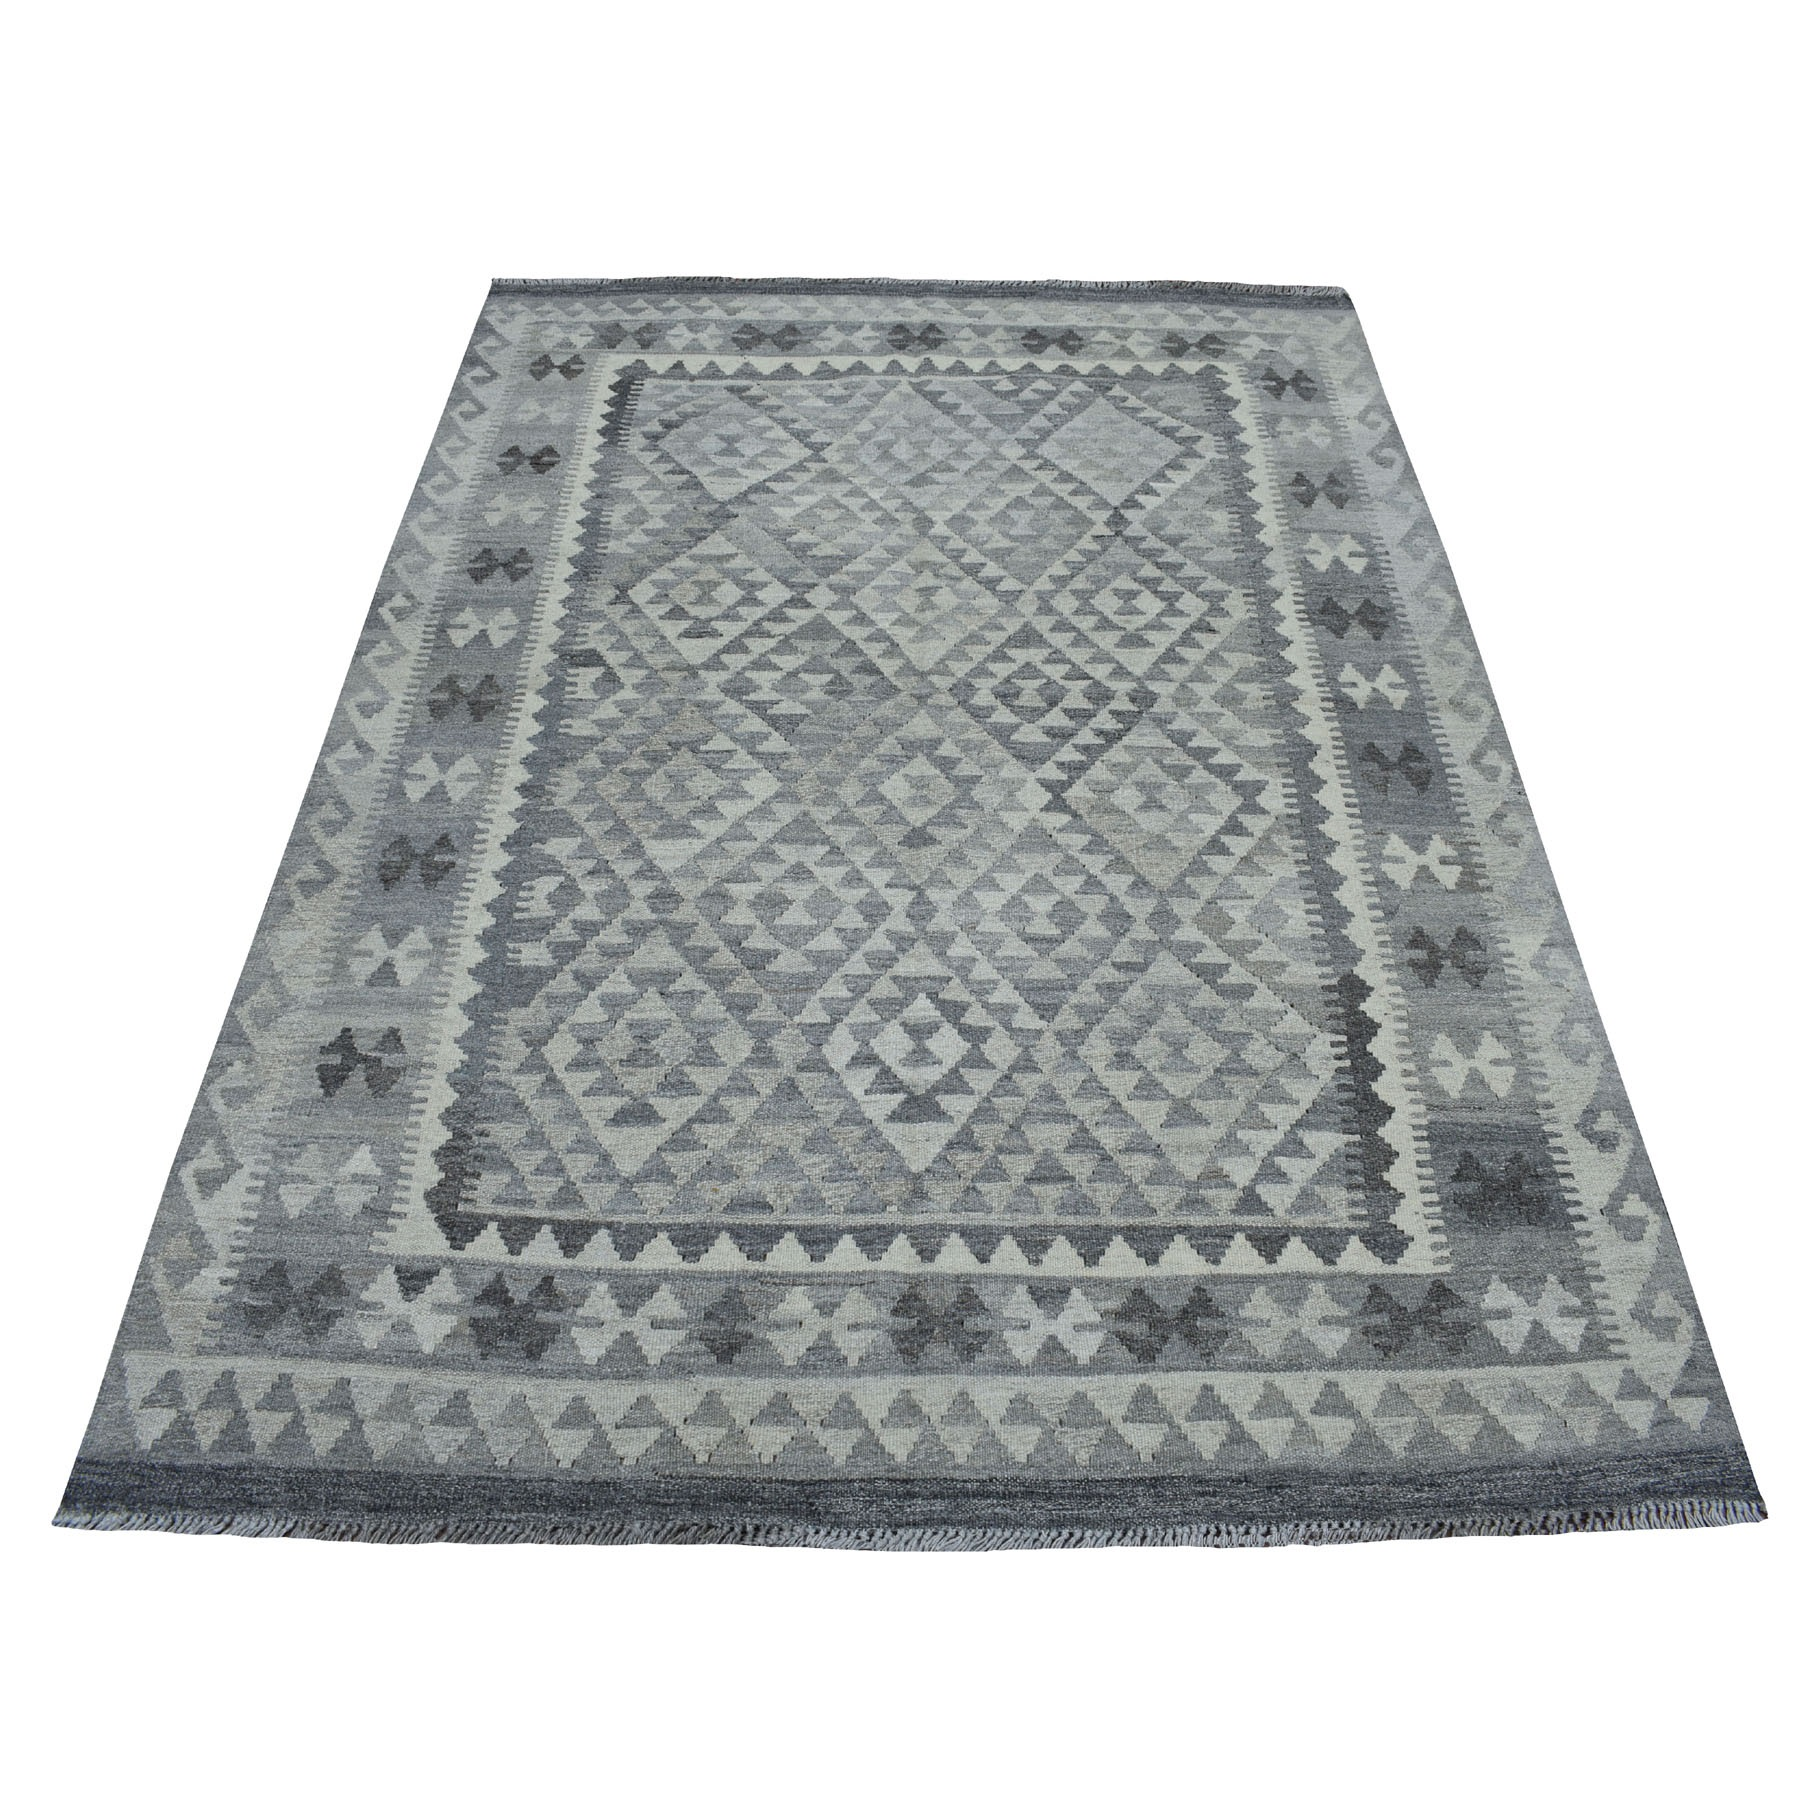 """5'X6'8"""" Undyed Natural Wool Afghan Kilim Reversible Hand Woven Oriental Rug moaec0ae"""